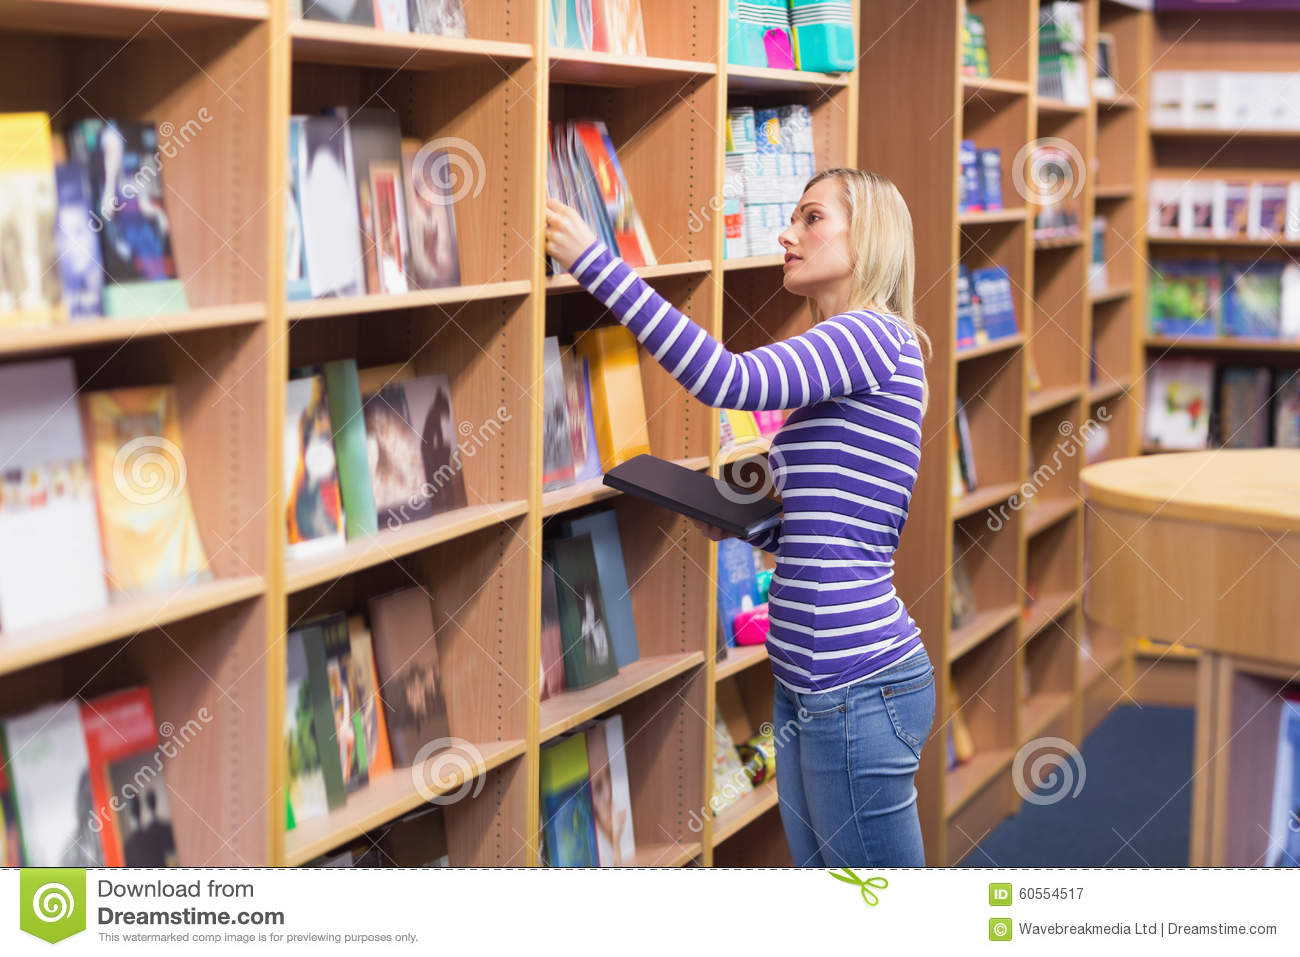 Young Woman Selecting Book From Bookshelf Download Preview